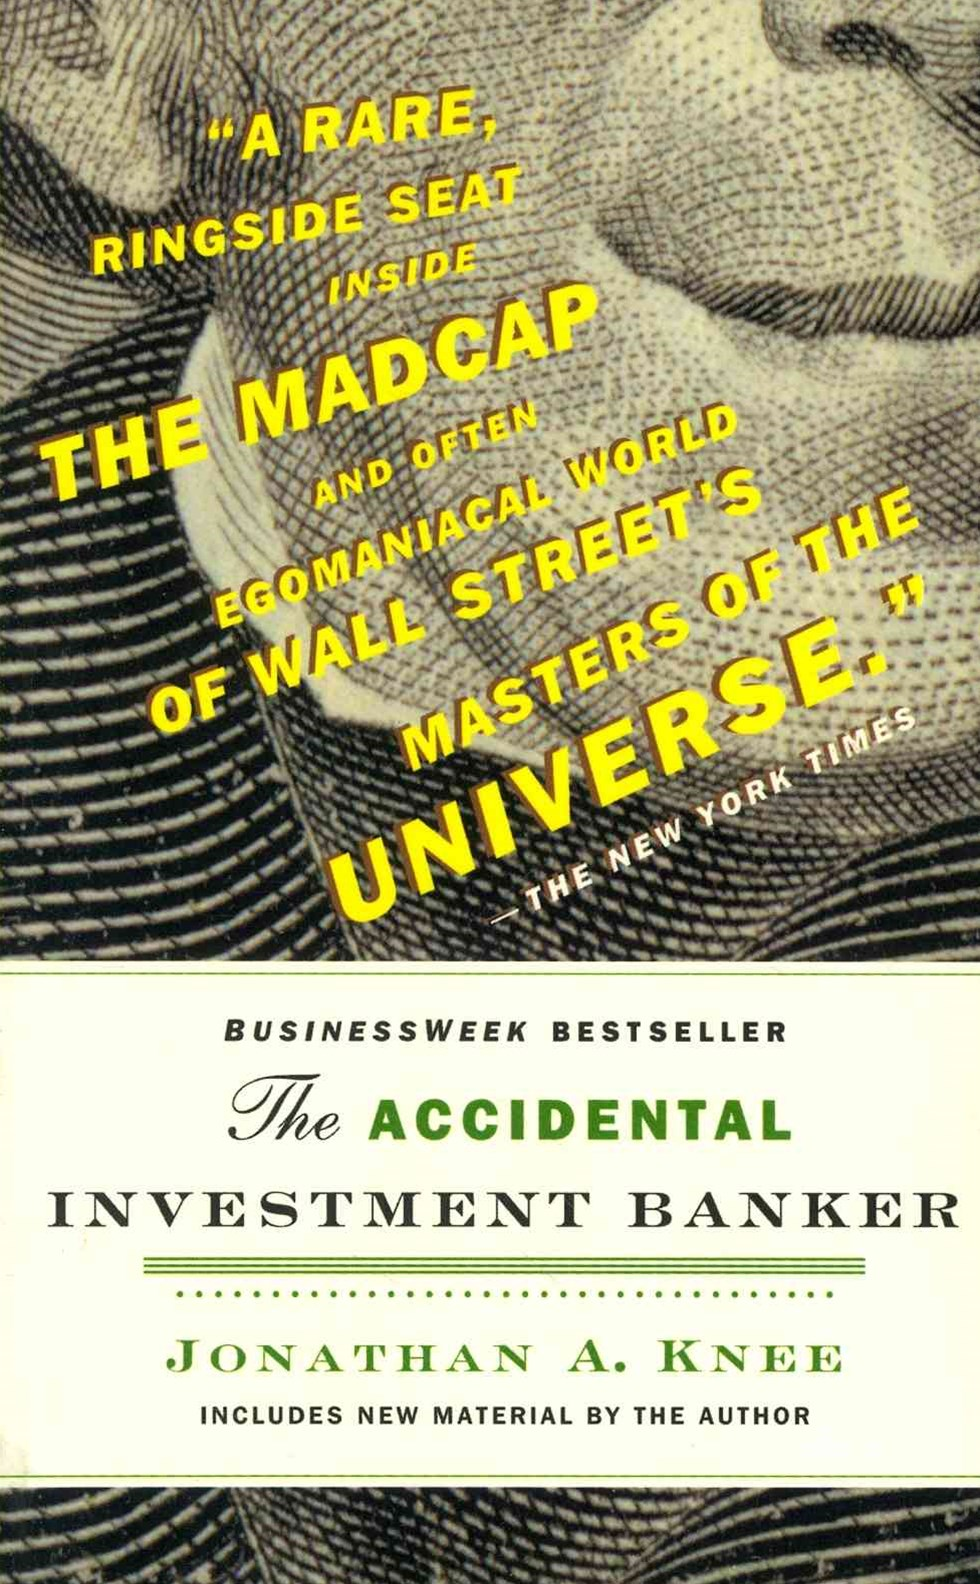 The Accidental Investment Banker - Inside the     Decade That Transformed Wall Street